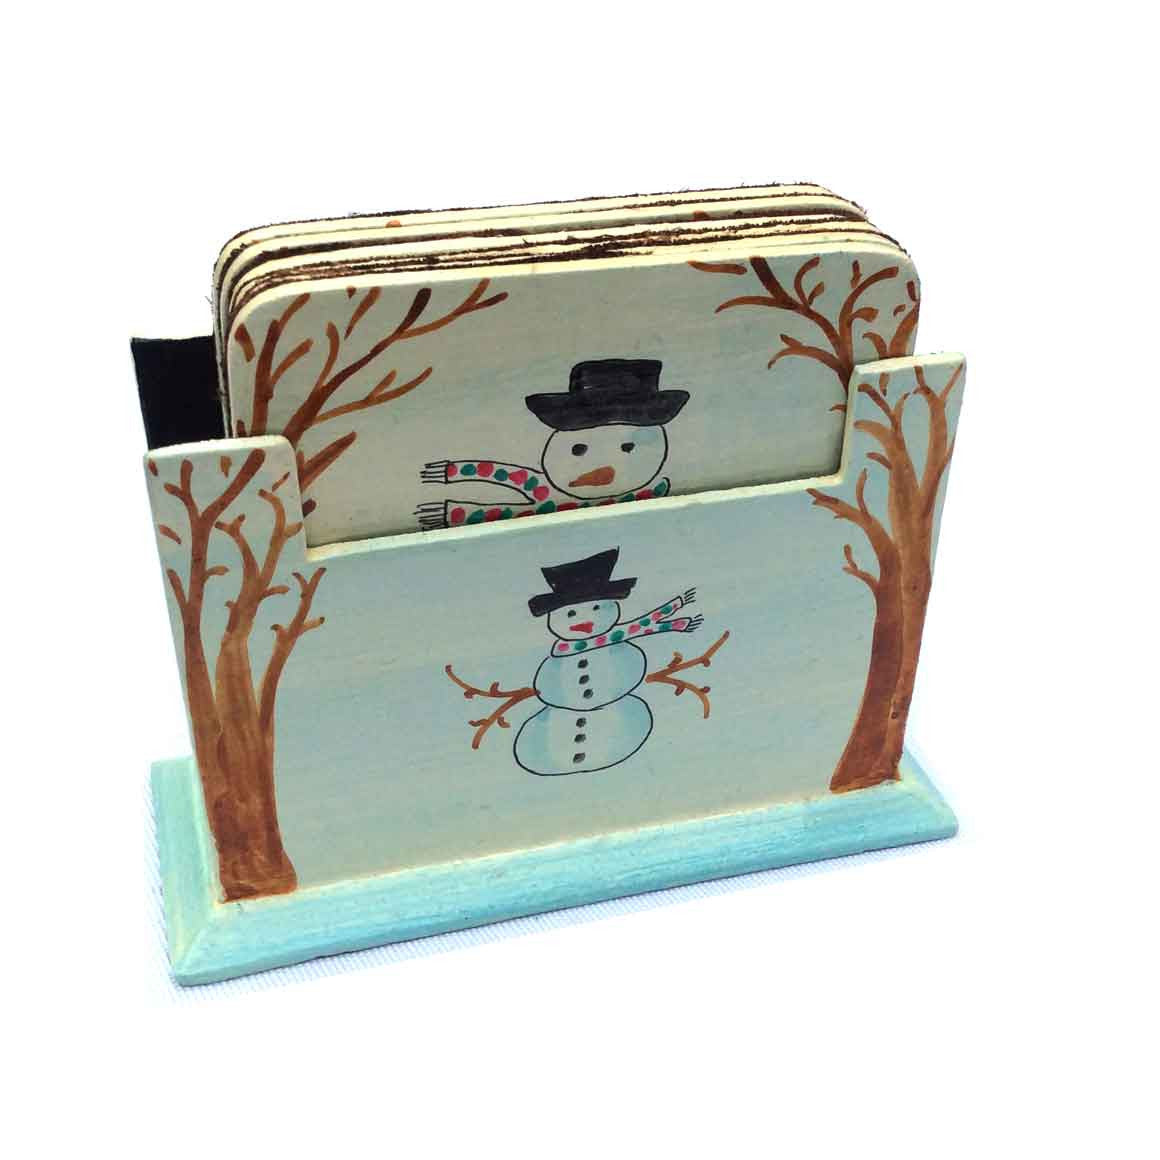 Fair Trade Ethical Snowman Hand-Painted Coaster Set